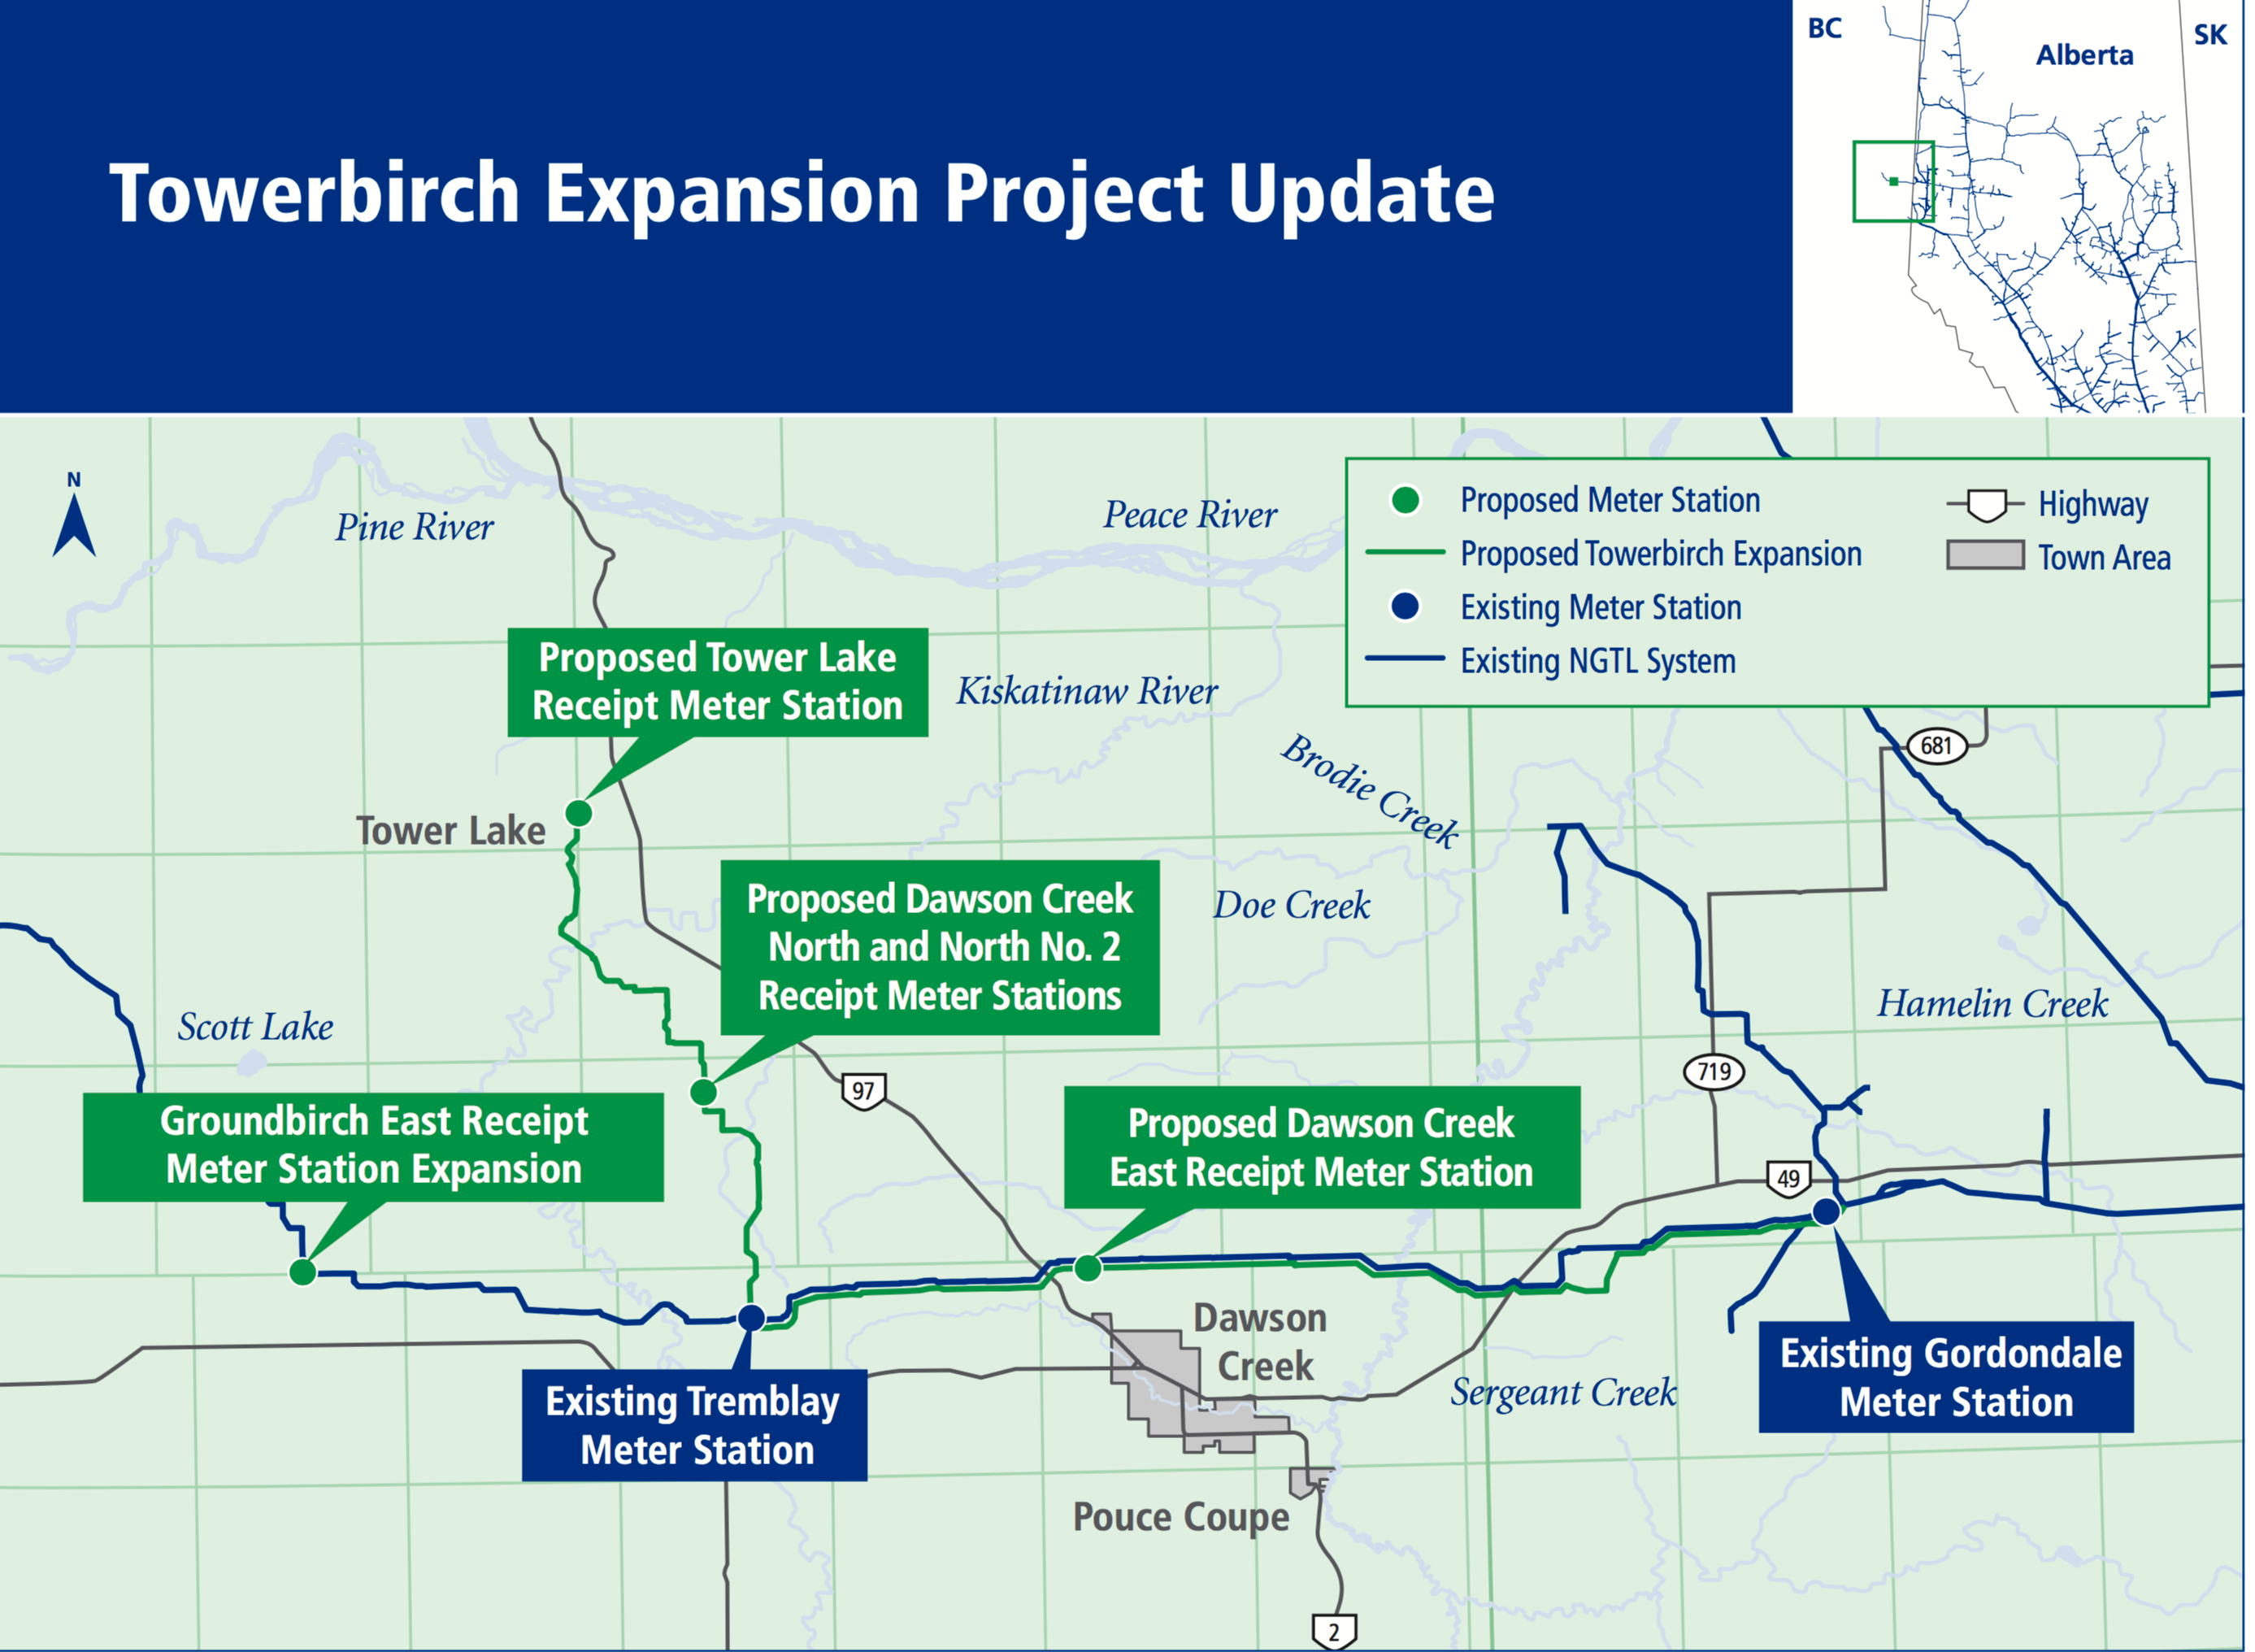 Towerbirch Expansion Project